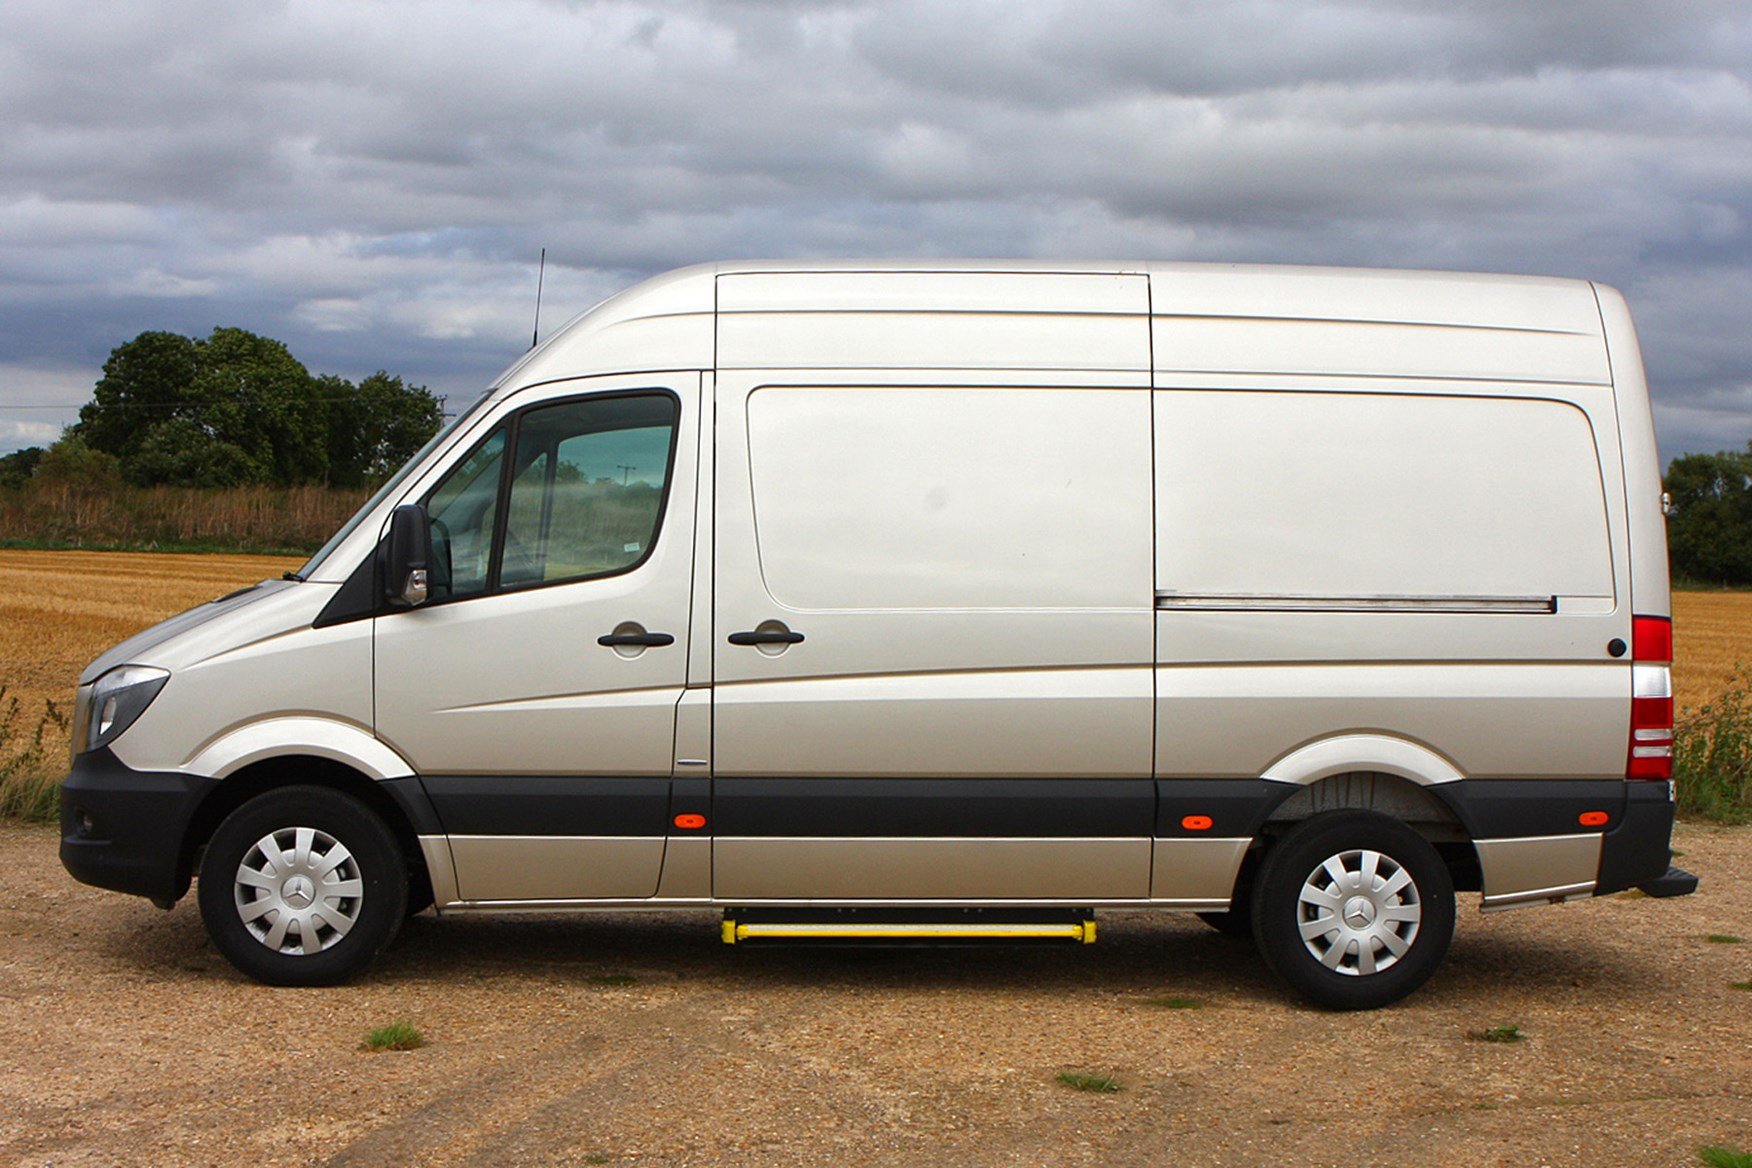 Mercedes-Benz Sprinter full review on Parkers Vans - side exterior